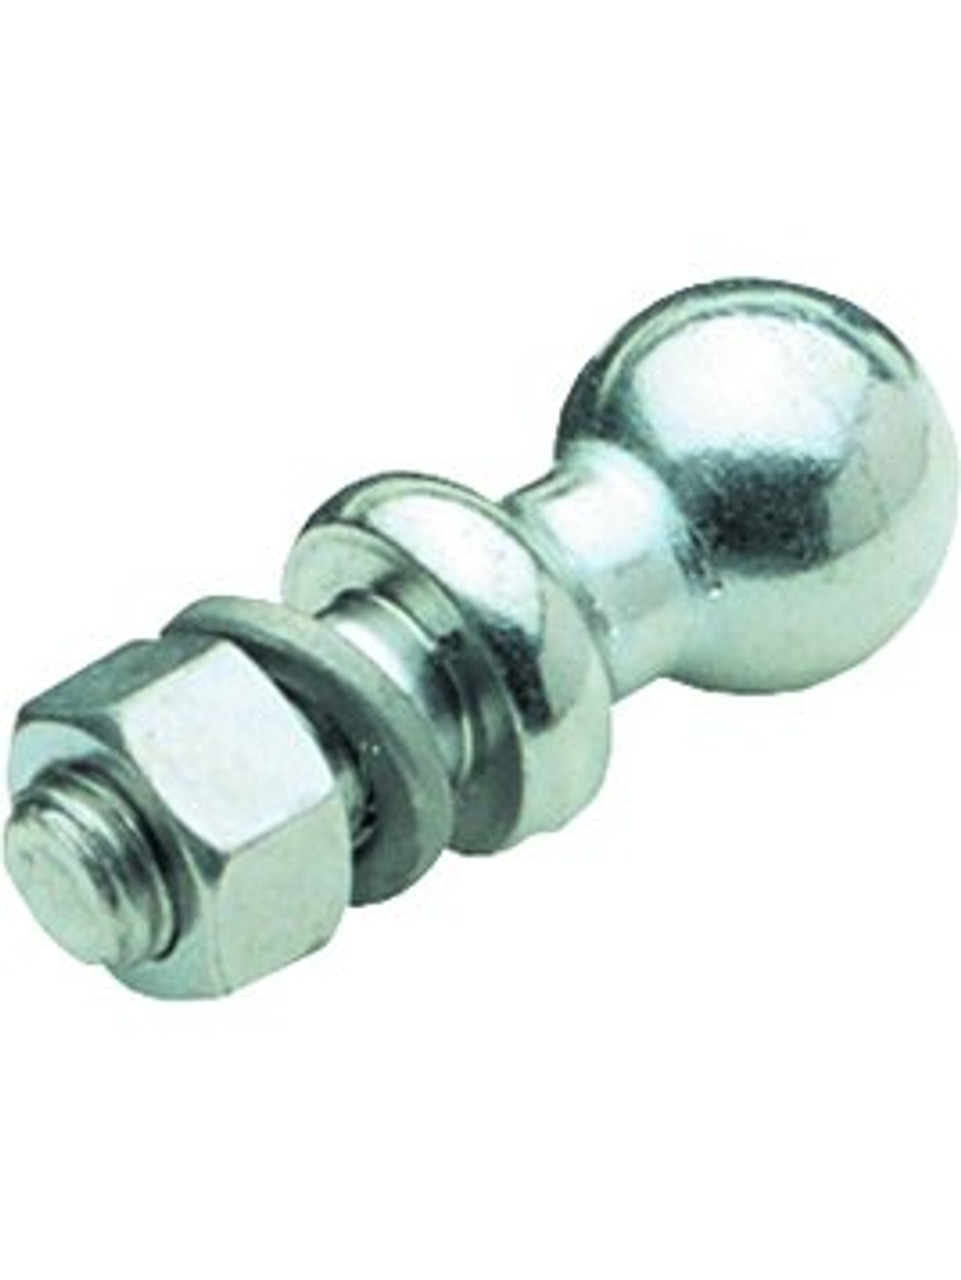 3443 --- Replacement Sway Control Ball